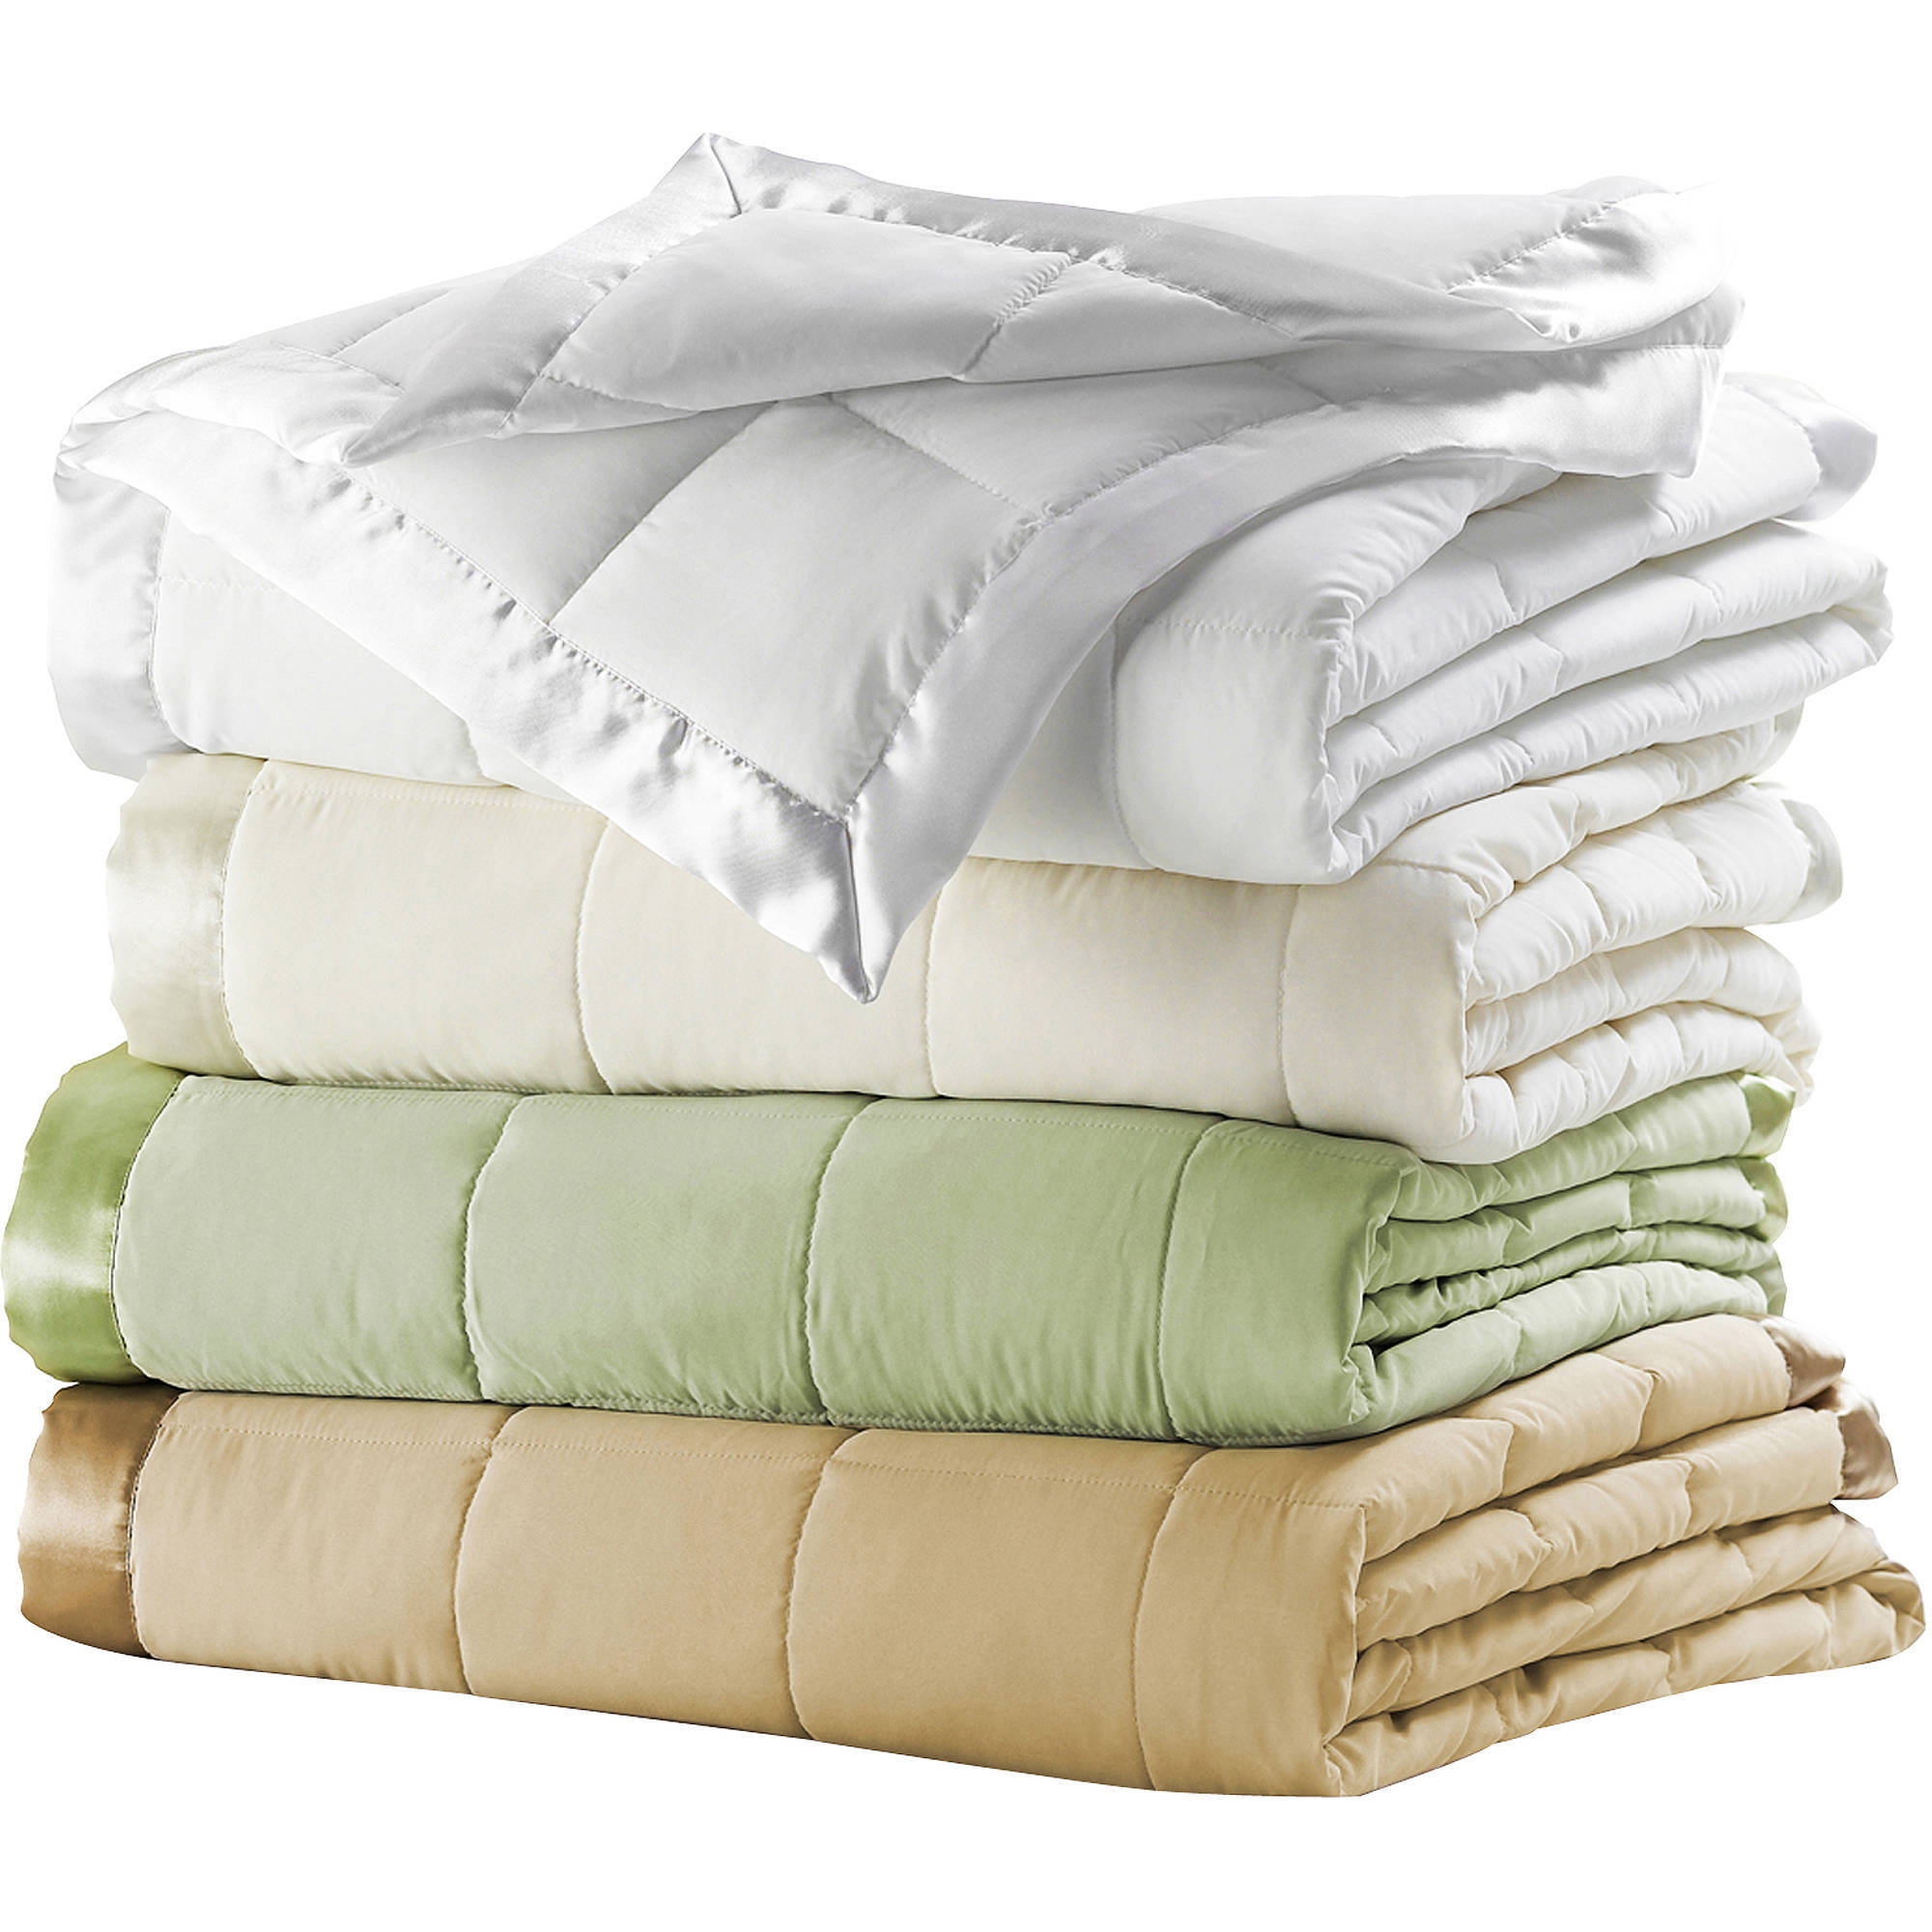 Microfiber Down-Alternative Blanket (Choice of Colors)